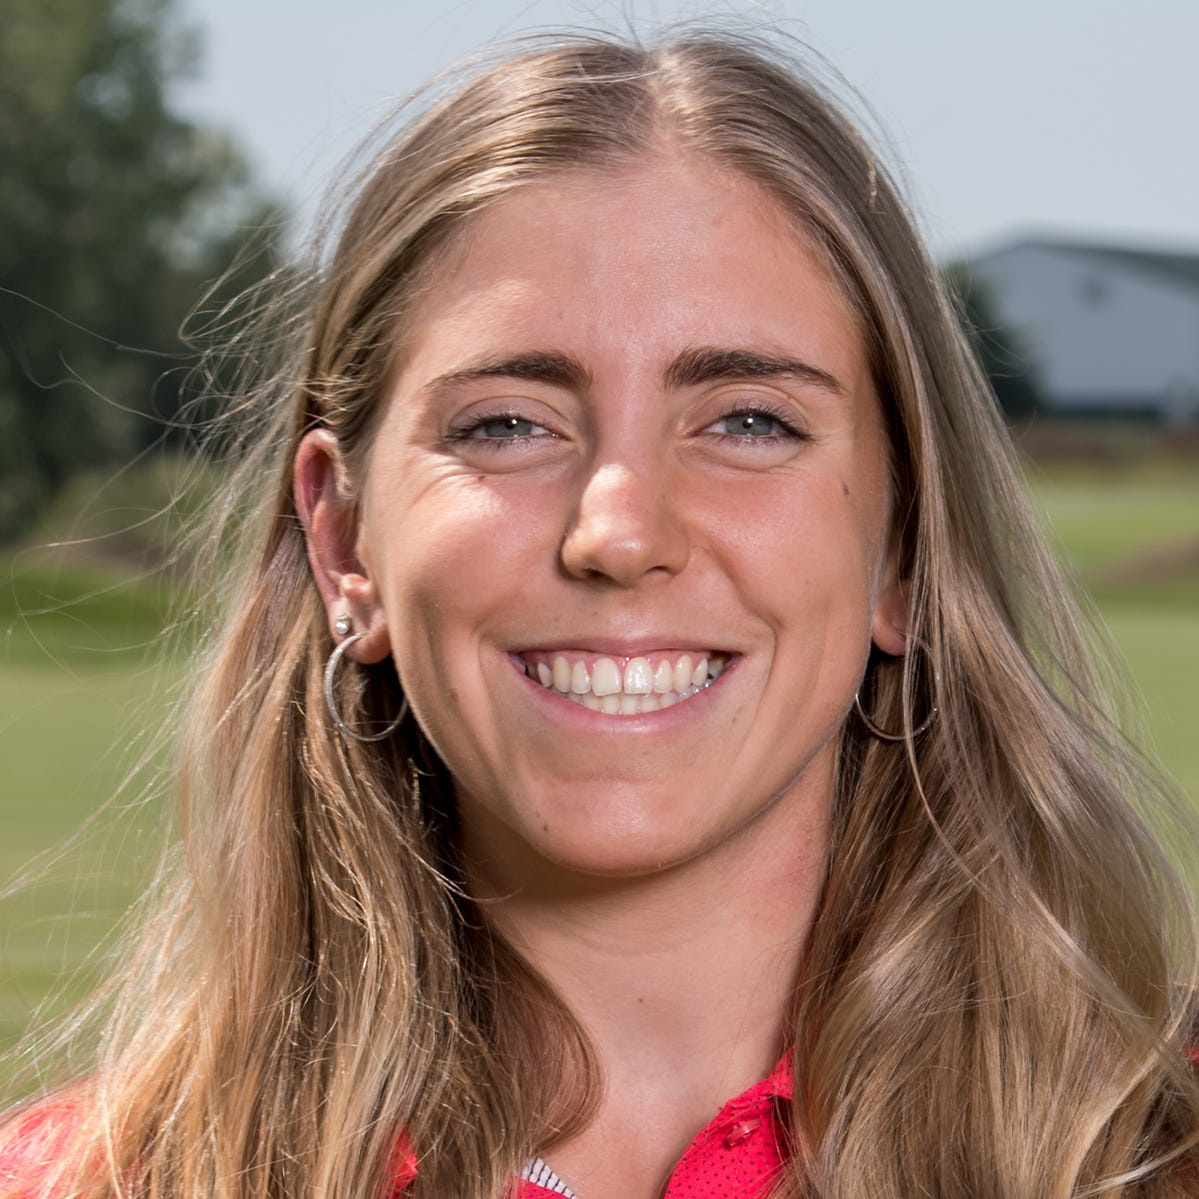 Iowa State video details slain golfer's transition to America: Learning English, finding classes, becoming a star Cyclone athlete